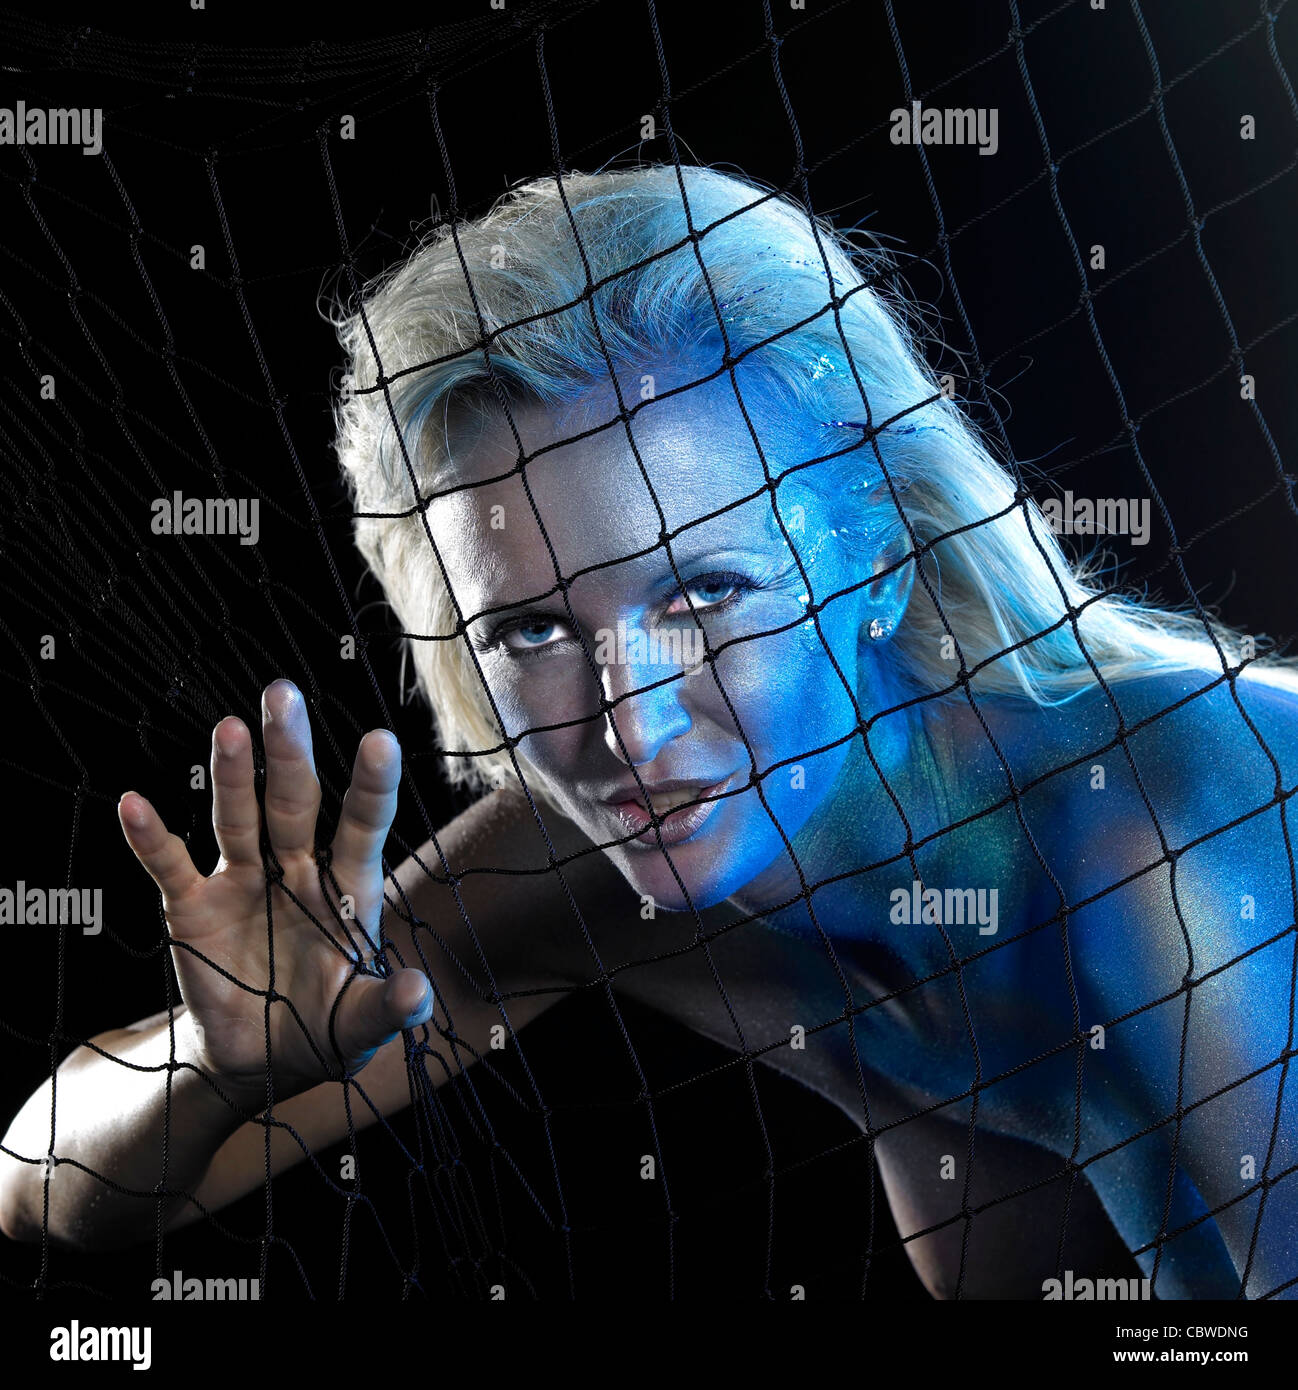 mystic mermaid theme showing a blue bodypainted woman posing with net in black back - Stock Image